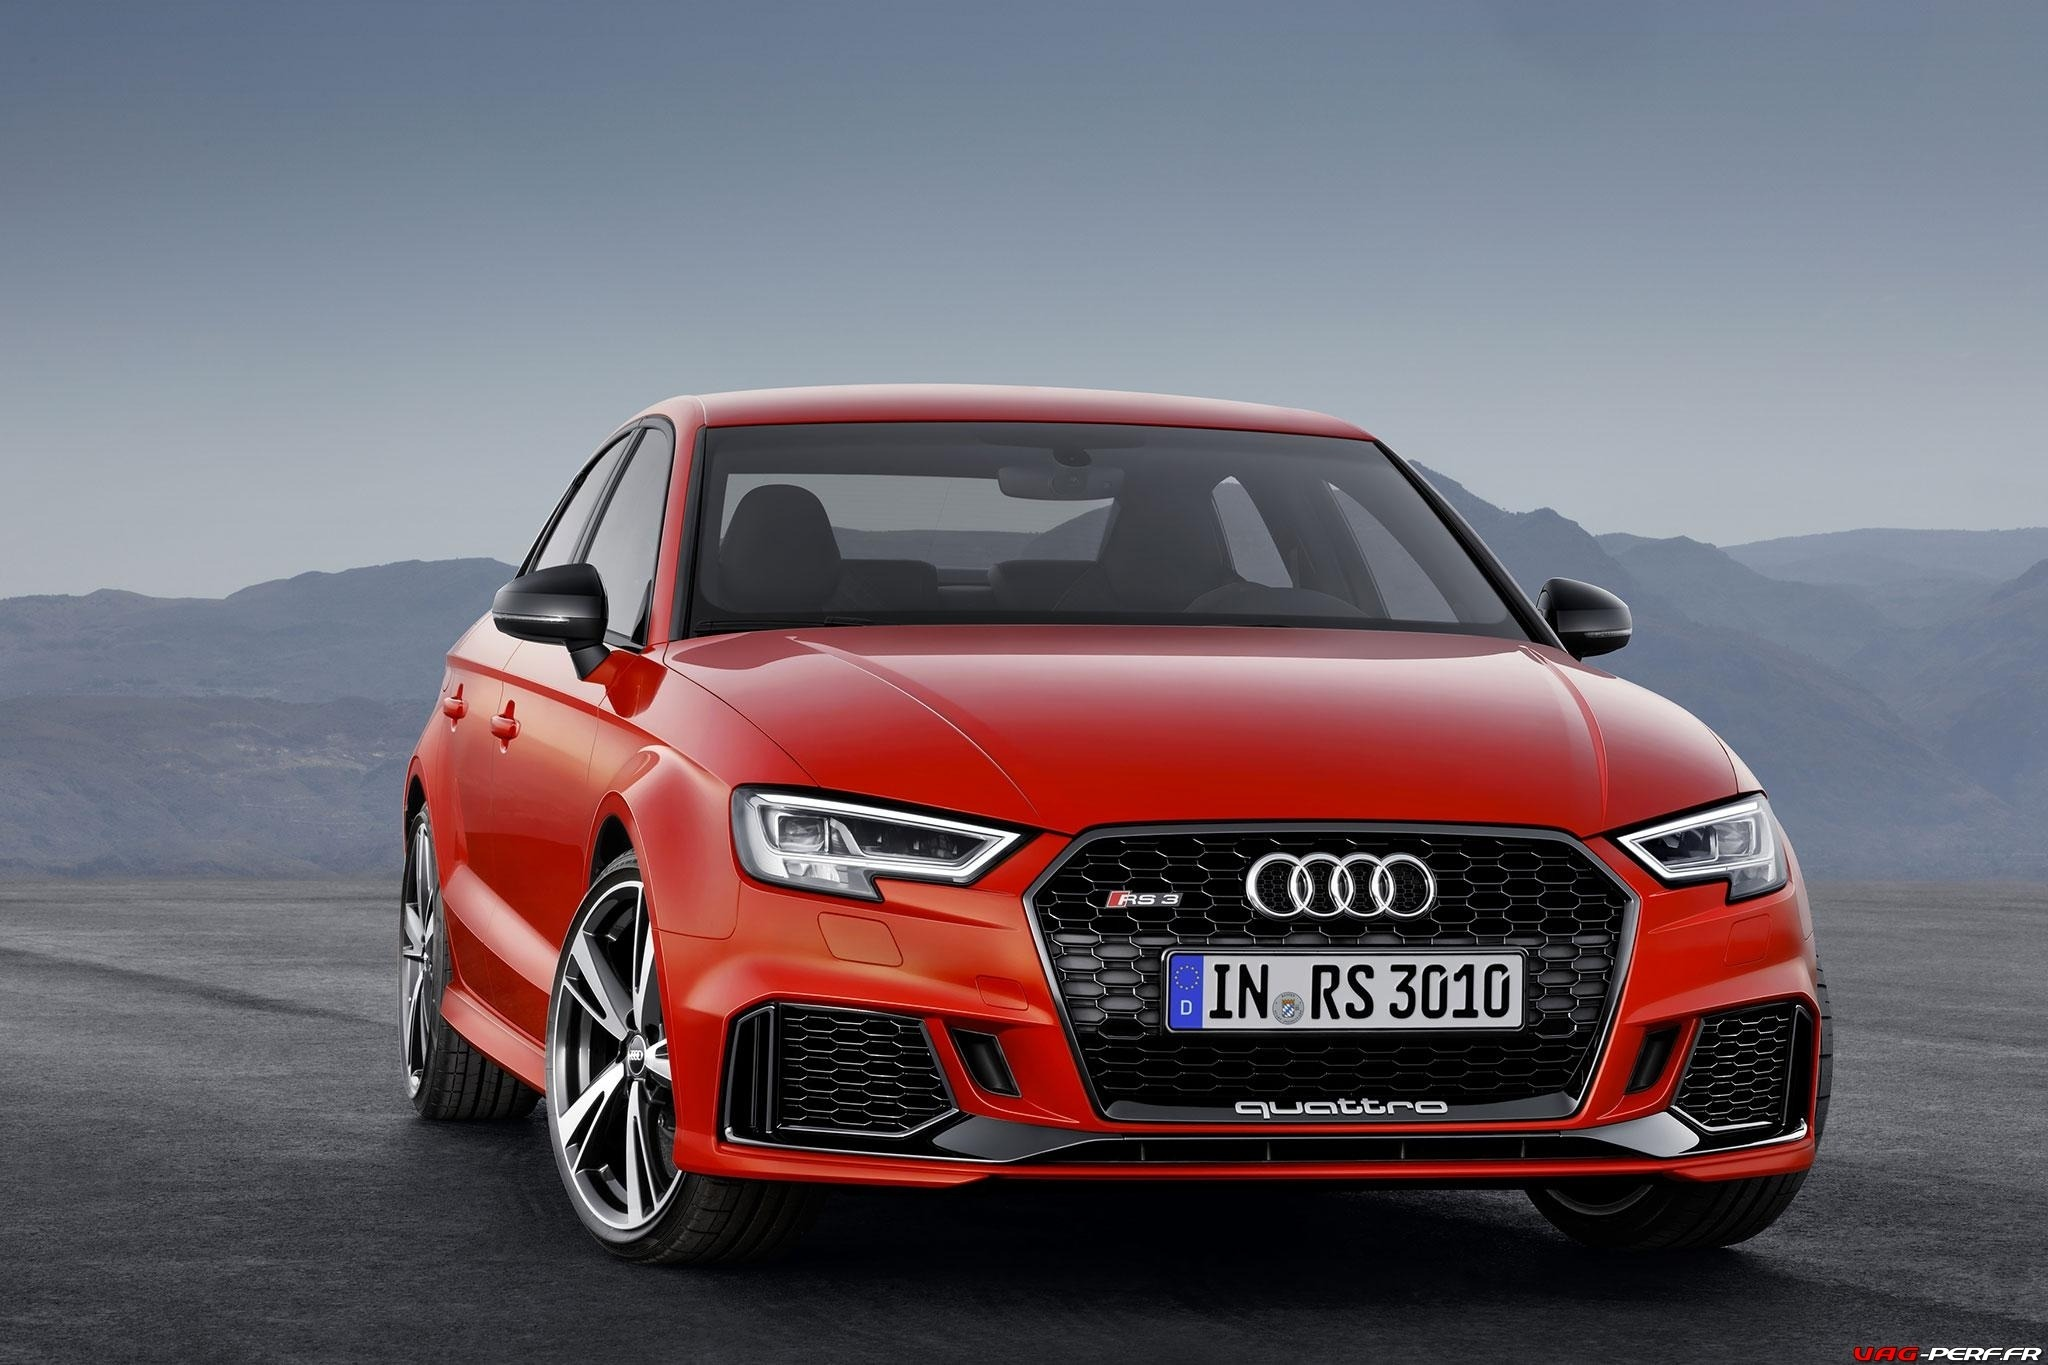 2016_Audi-RS3-Sedan-Officiel_09